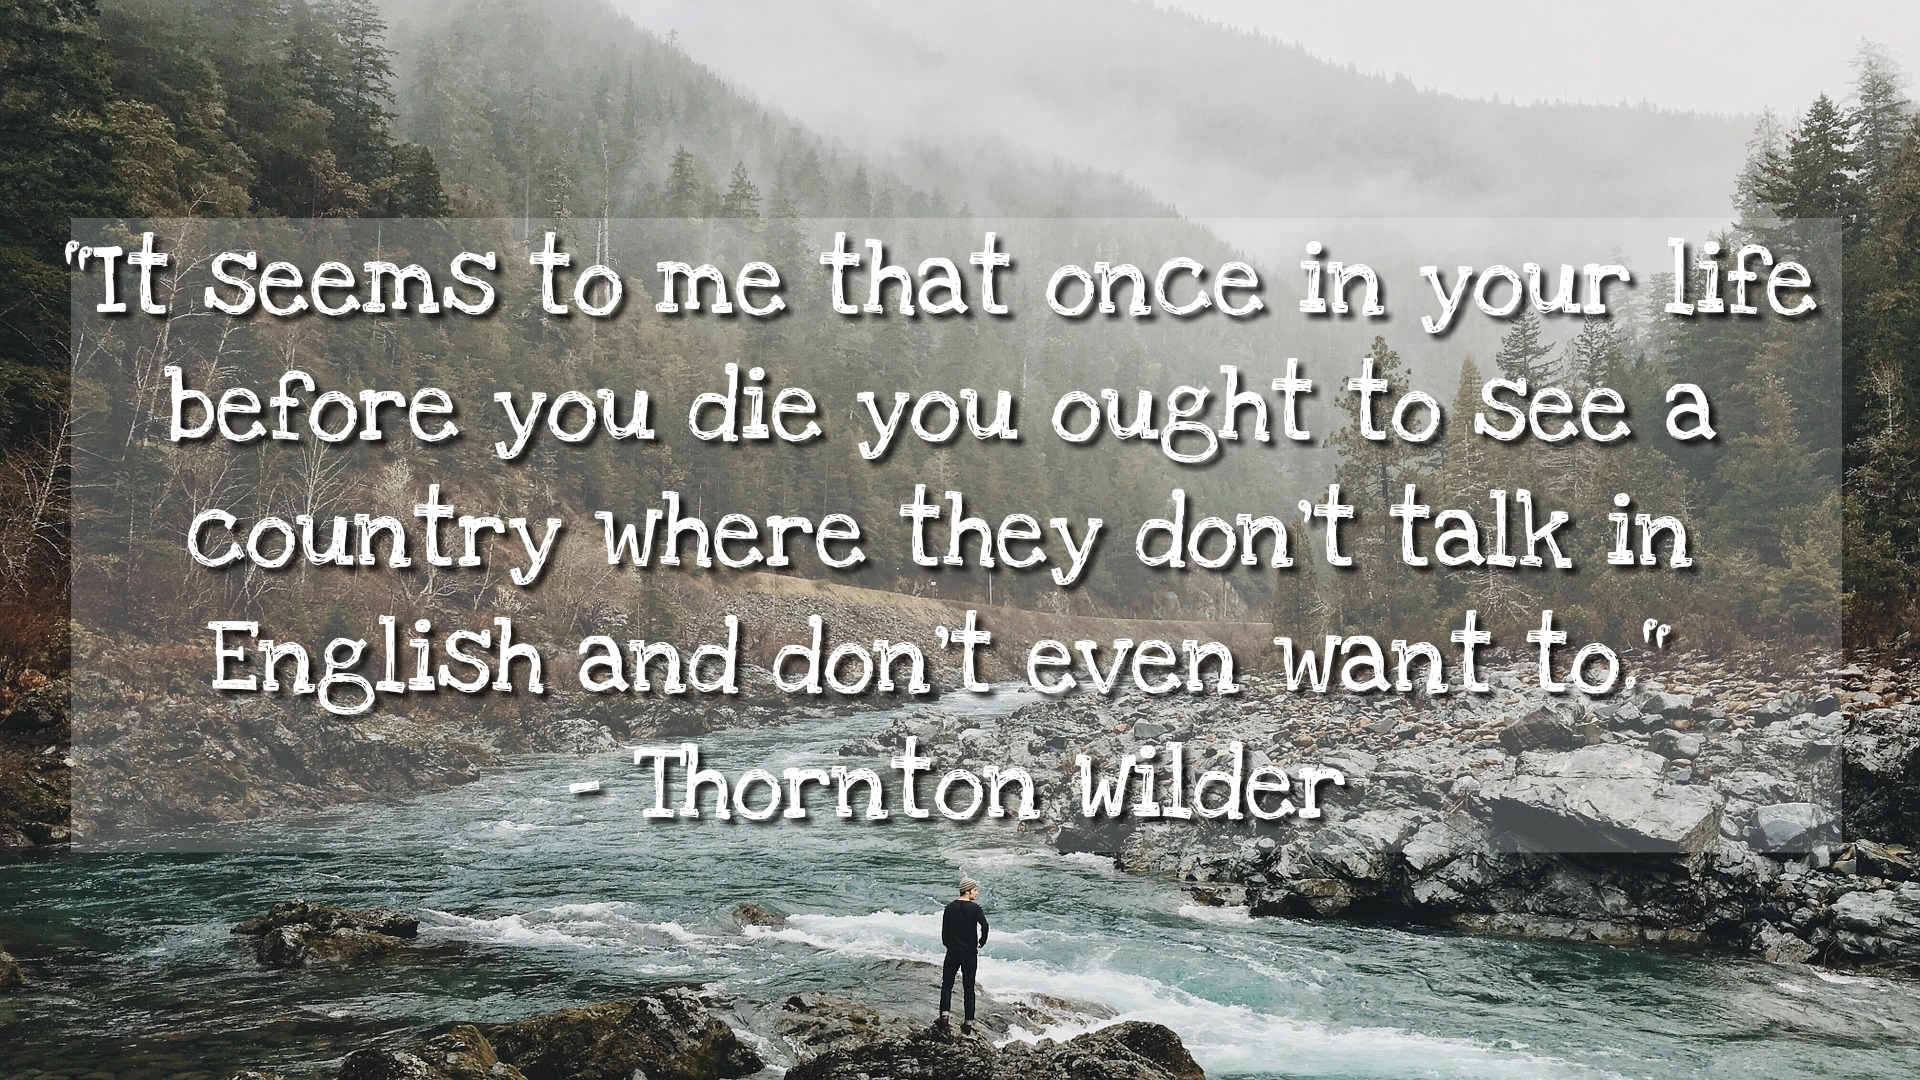 """It seems to me that once in your life before you die you ought to see a country where they don't talk in English and don't even want to."" – Thornton Wilder [1920 x 1080]"